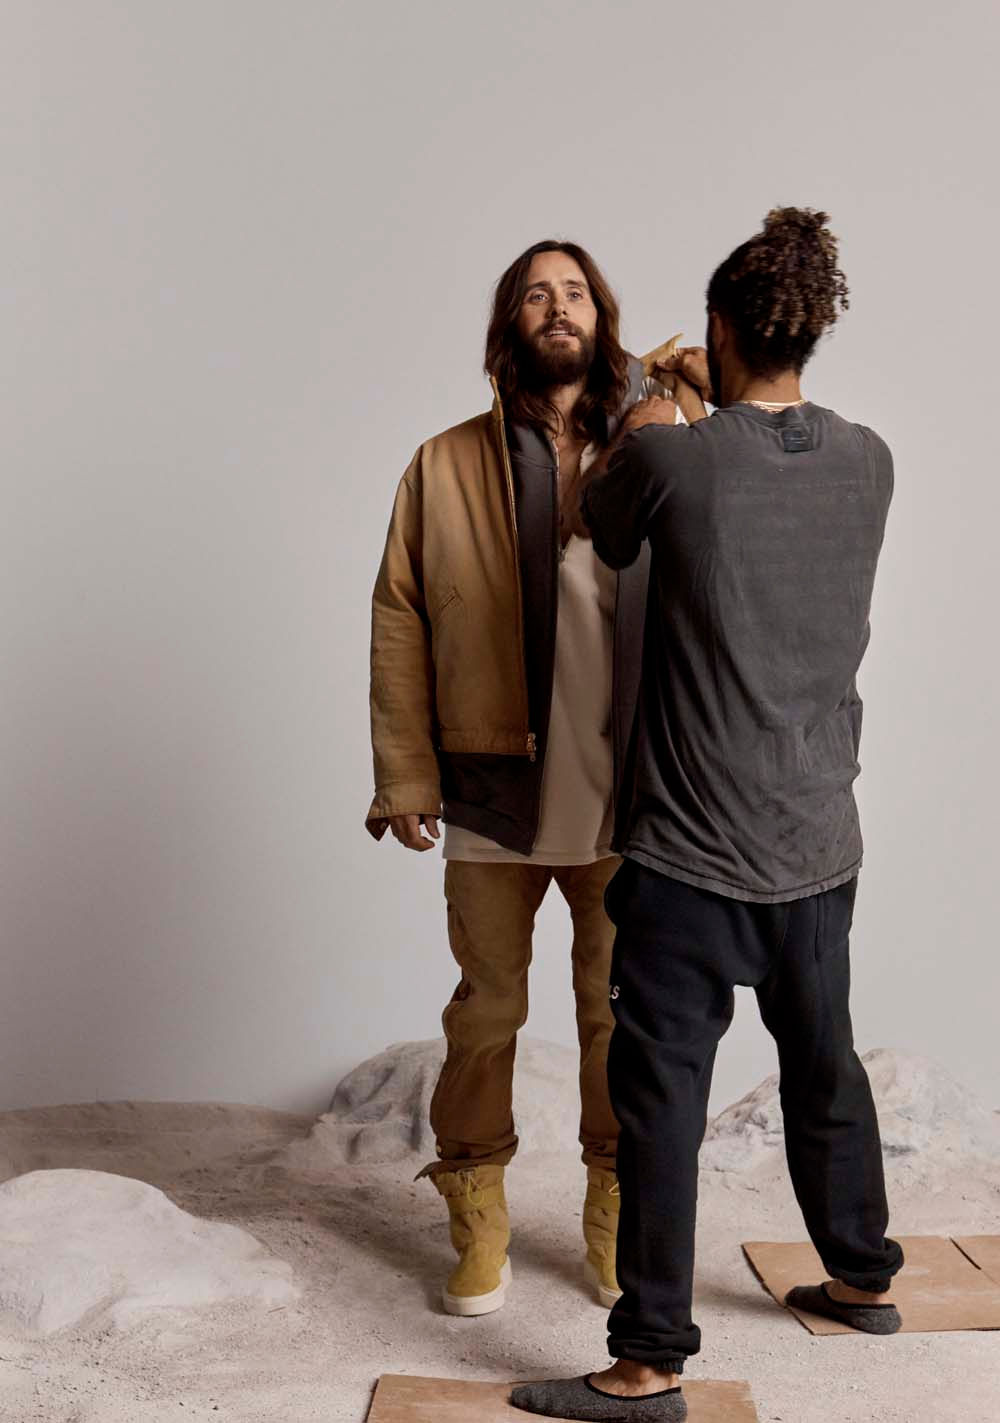 https_%2F%2Fhypebeast.com%2Fimage%2F2018%2F09%2Ffear-of-god-6-sixth-collection-jared-leto-nike-35.jpg